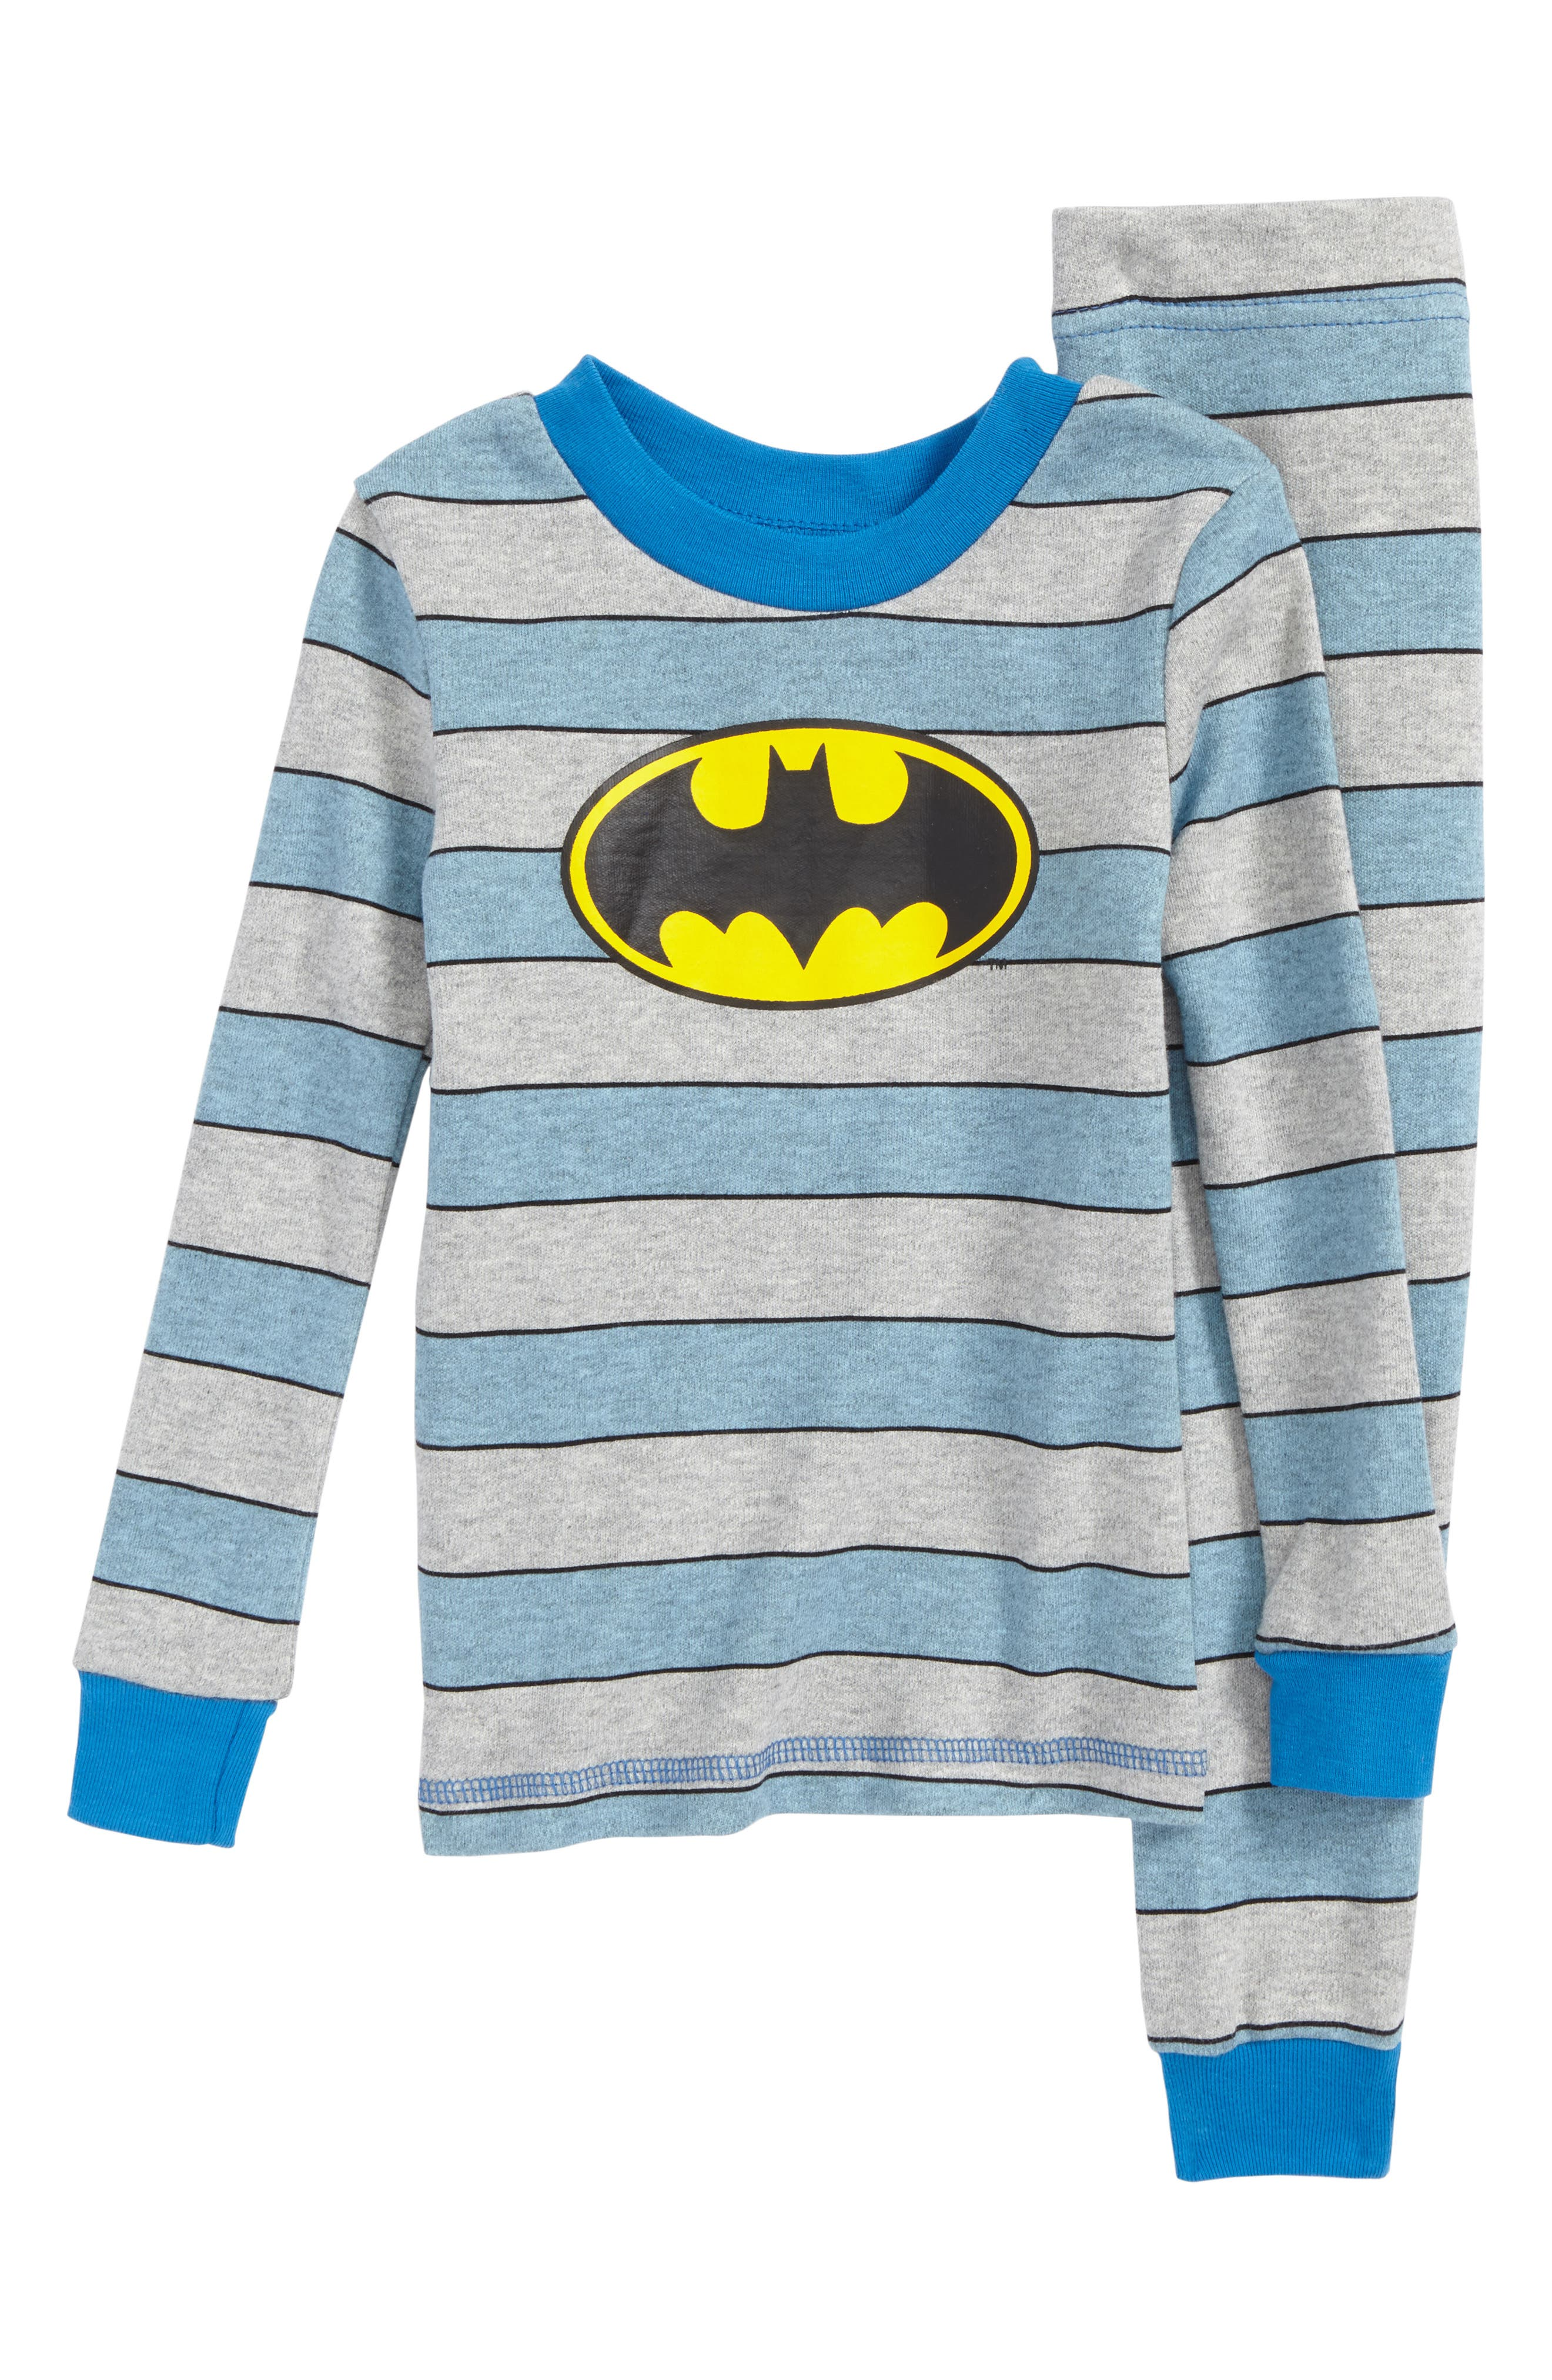 Batman Fitted Two-Piece Pajama Set,                             Main thumbnail 1, color,                             Blue